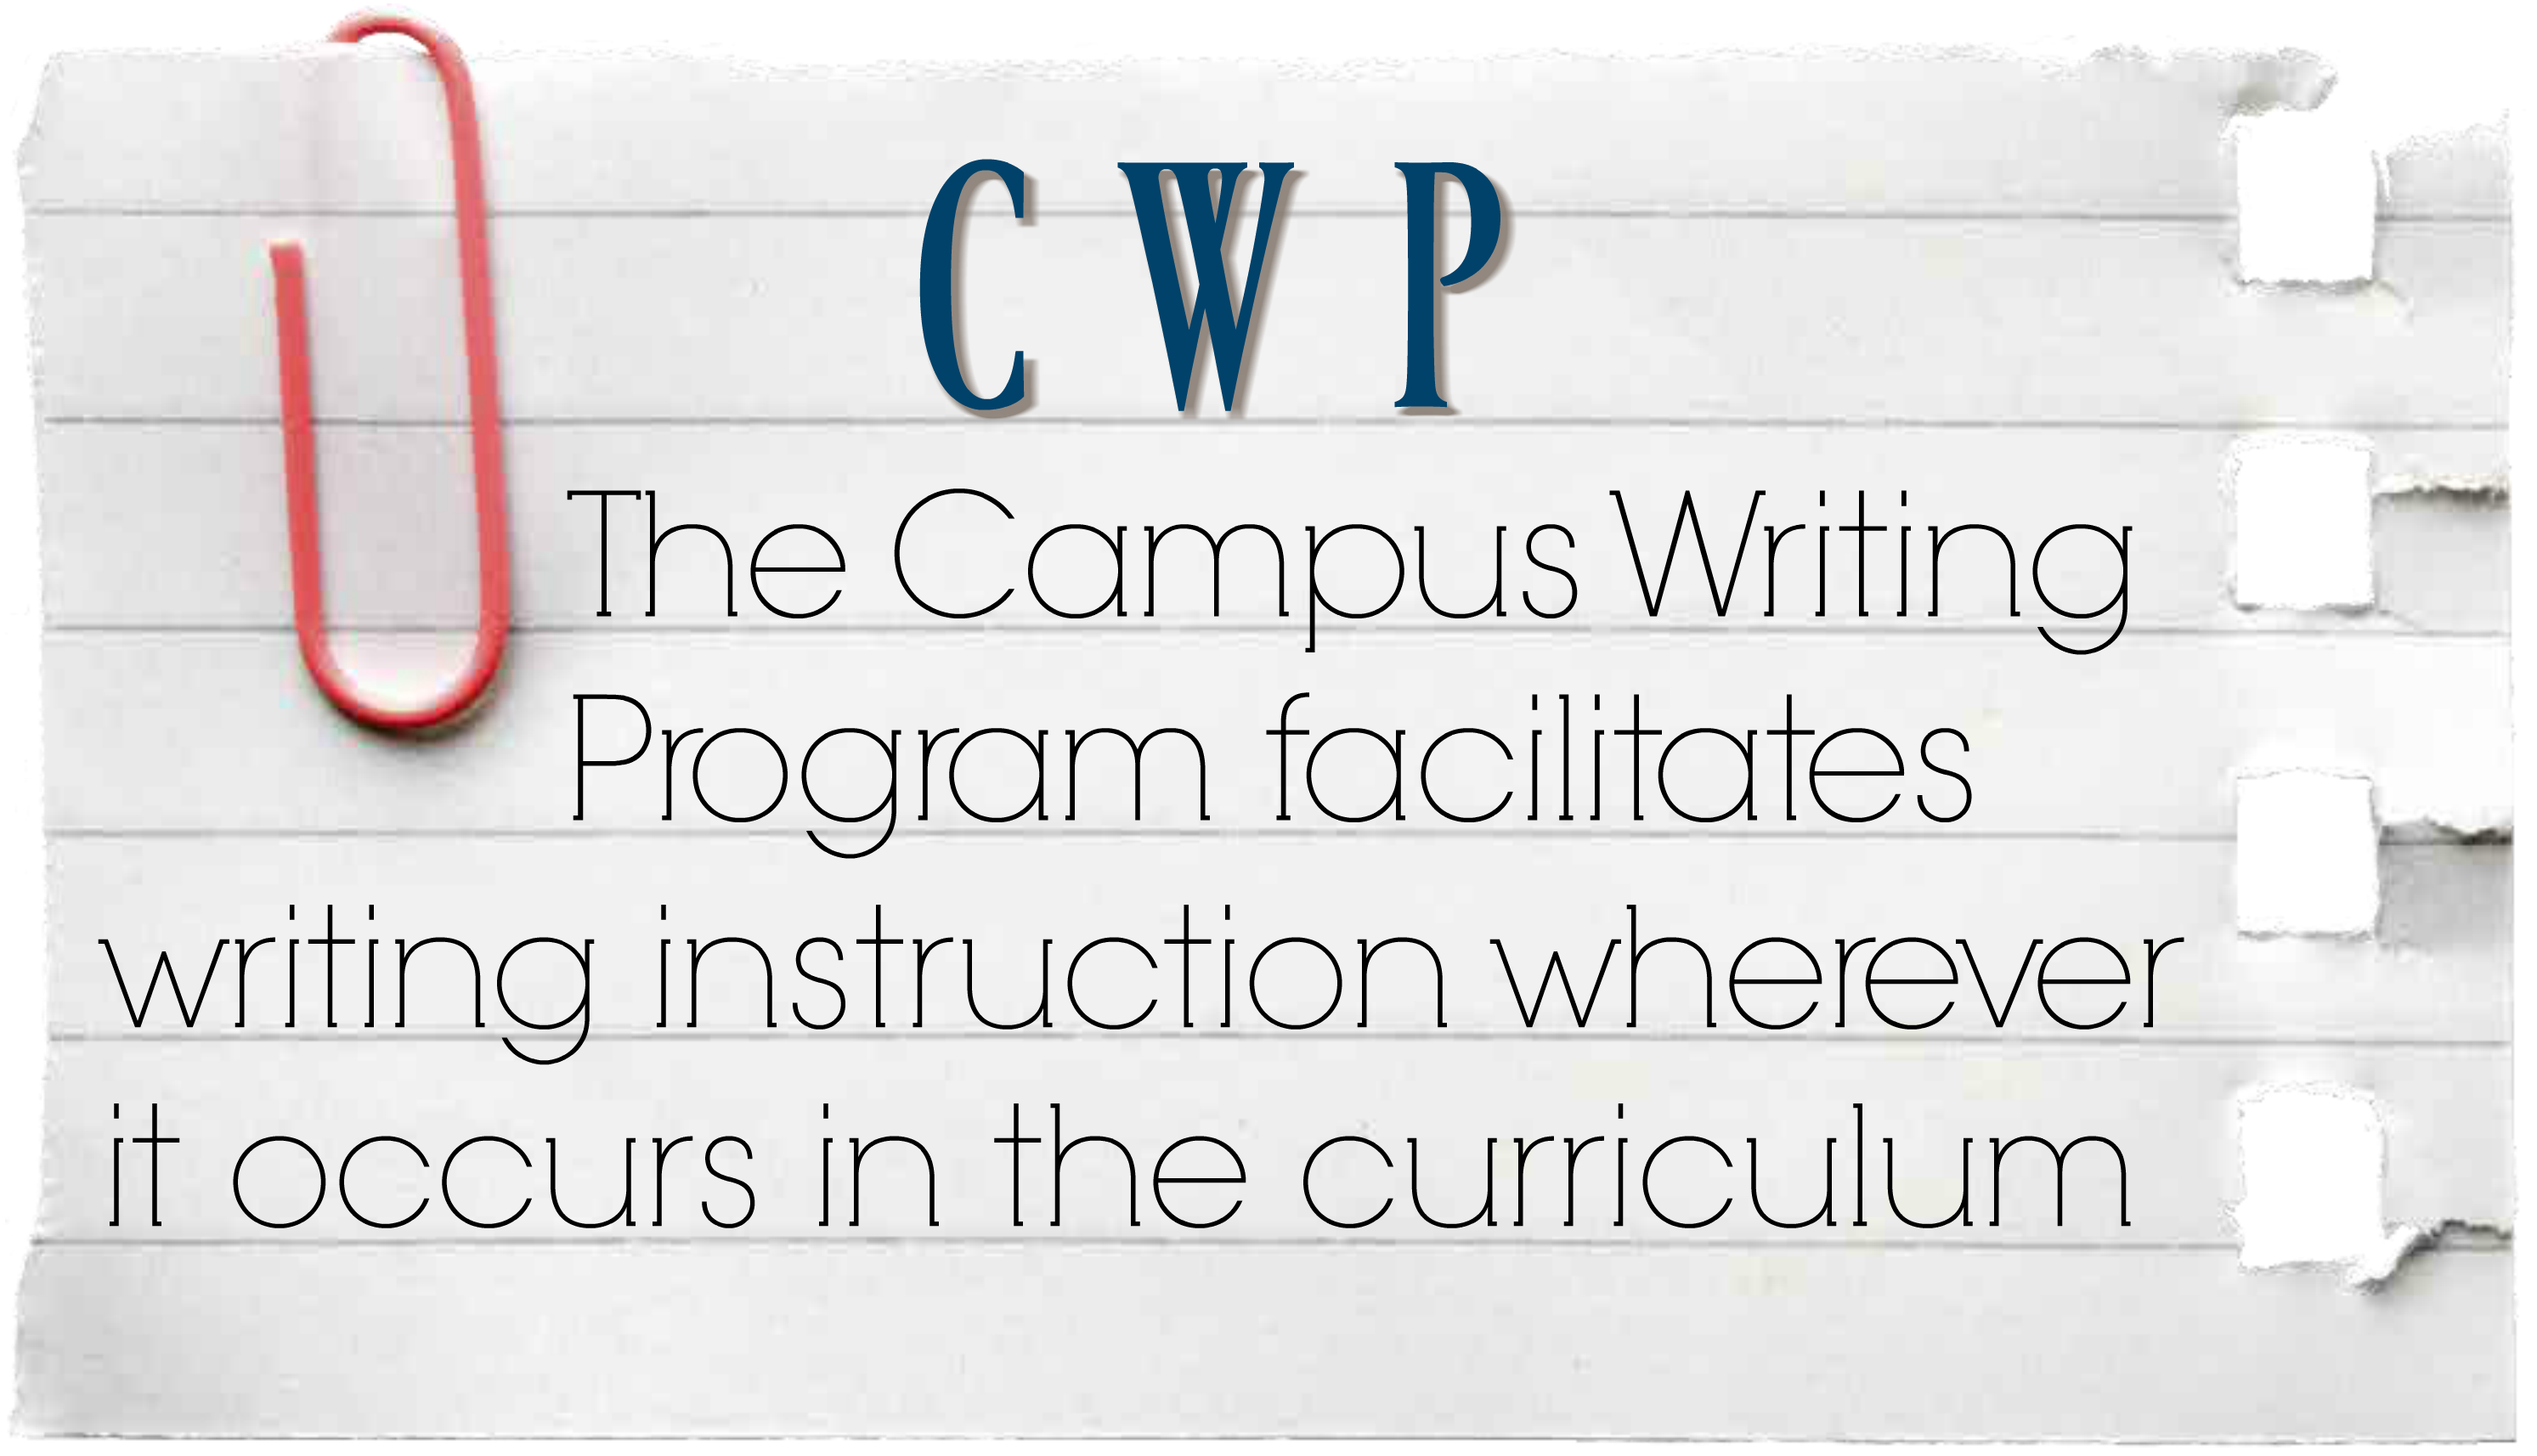 CWP facilitates writing instruction wherever it occurs in the curriculum